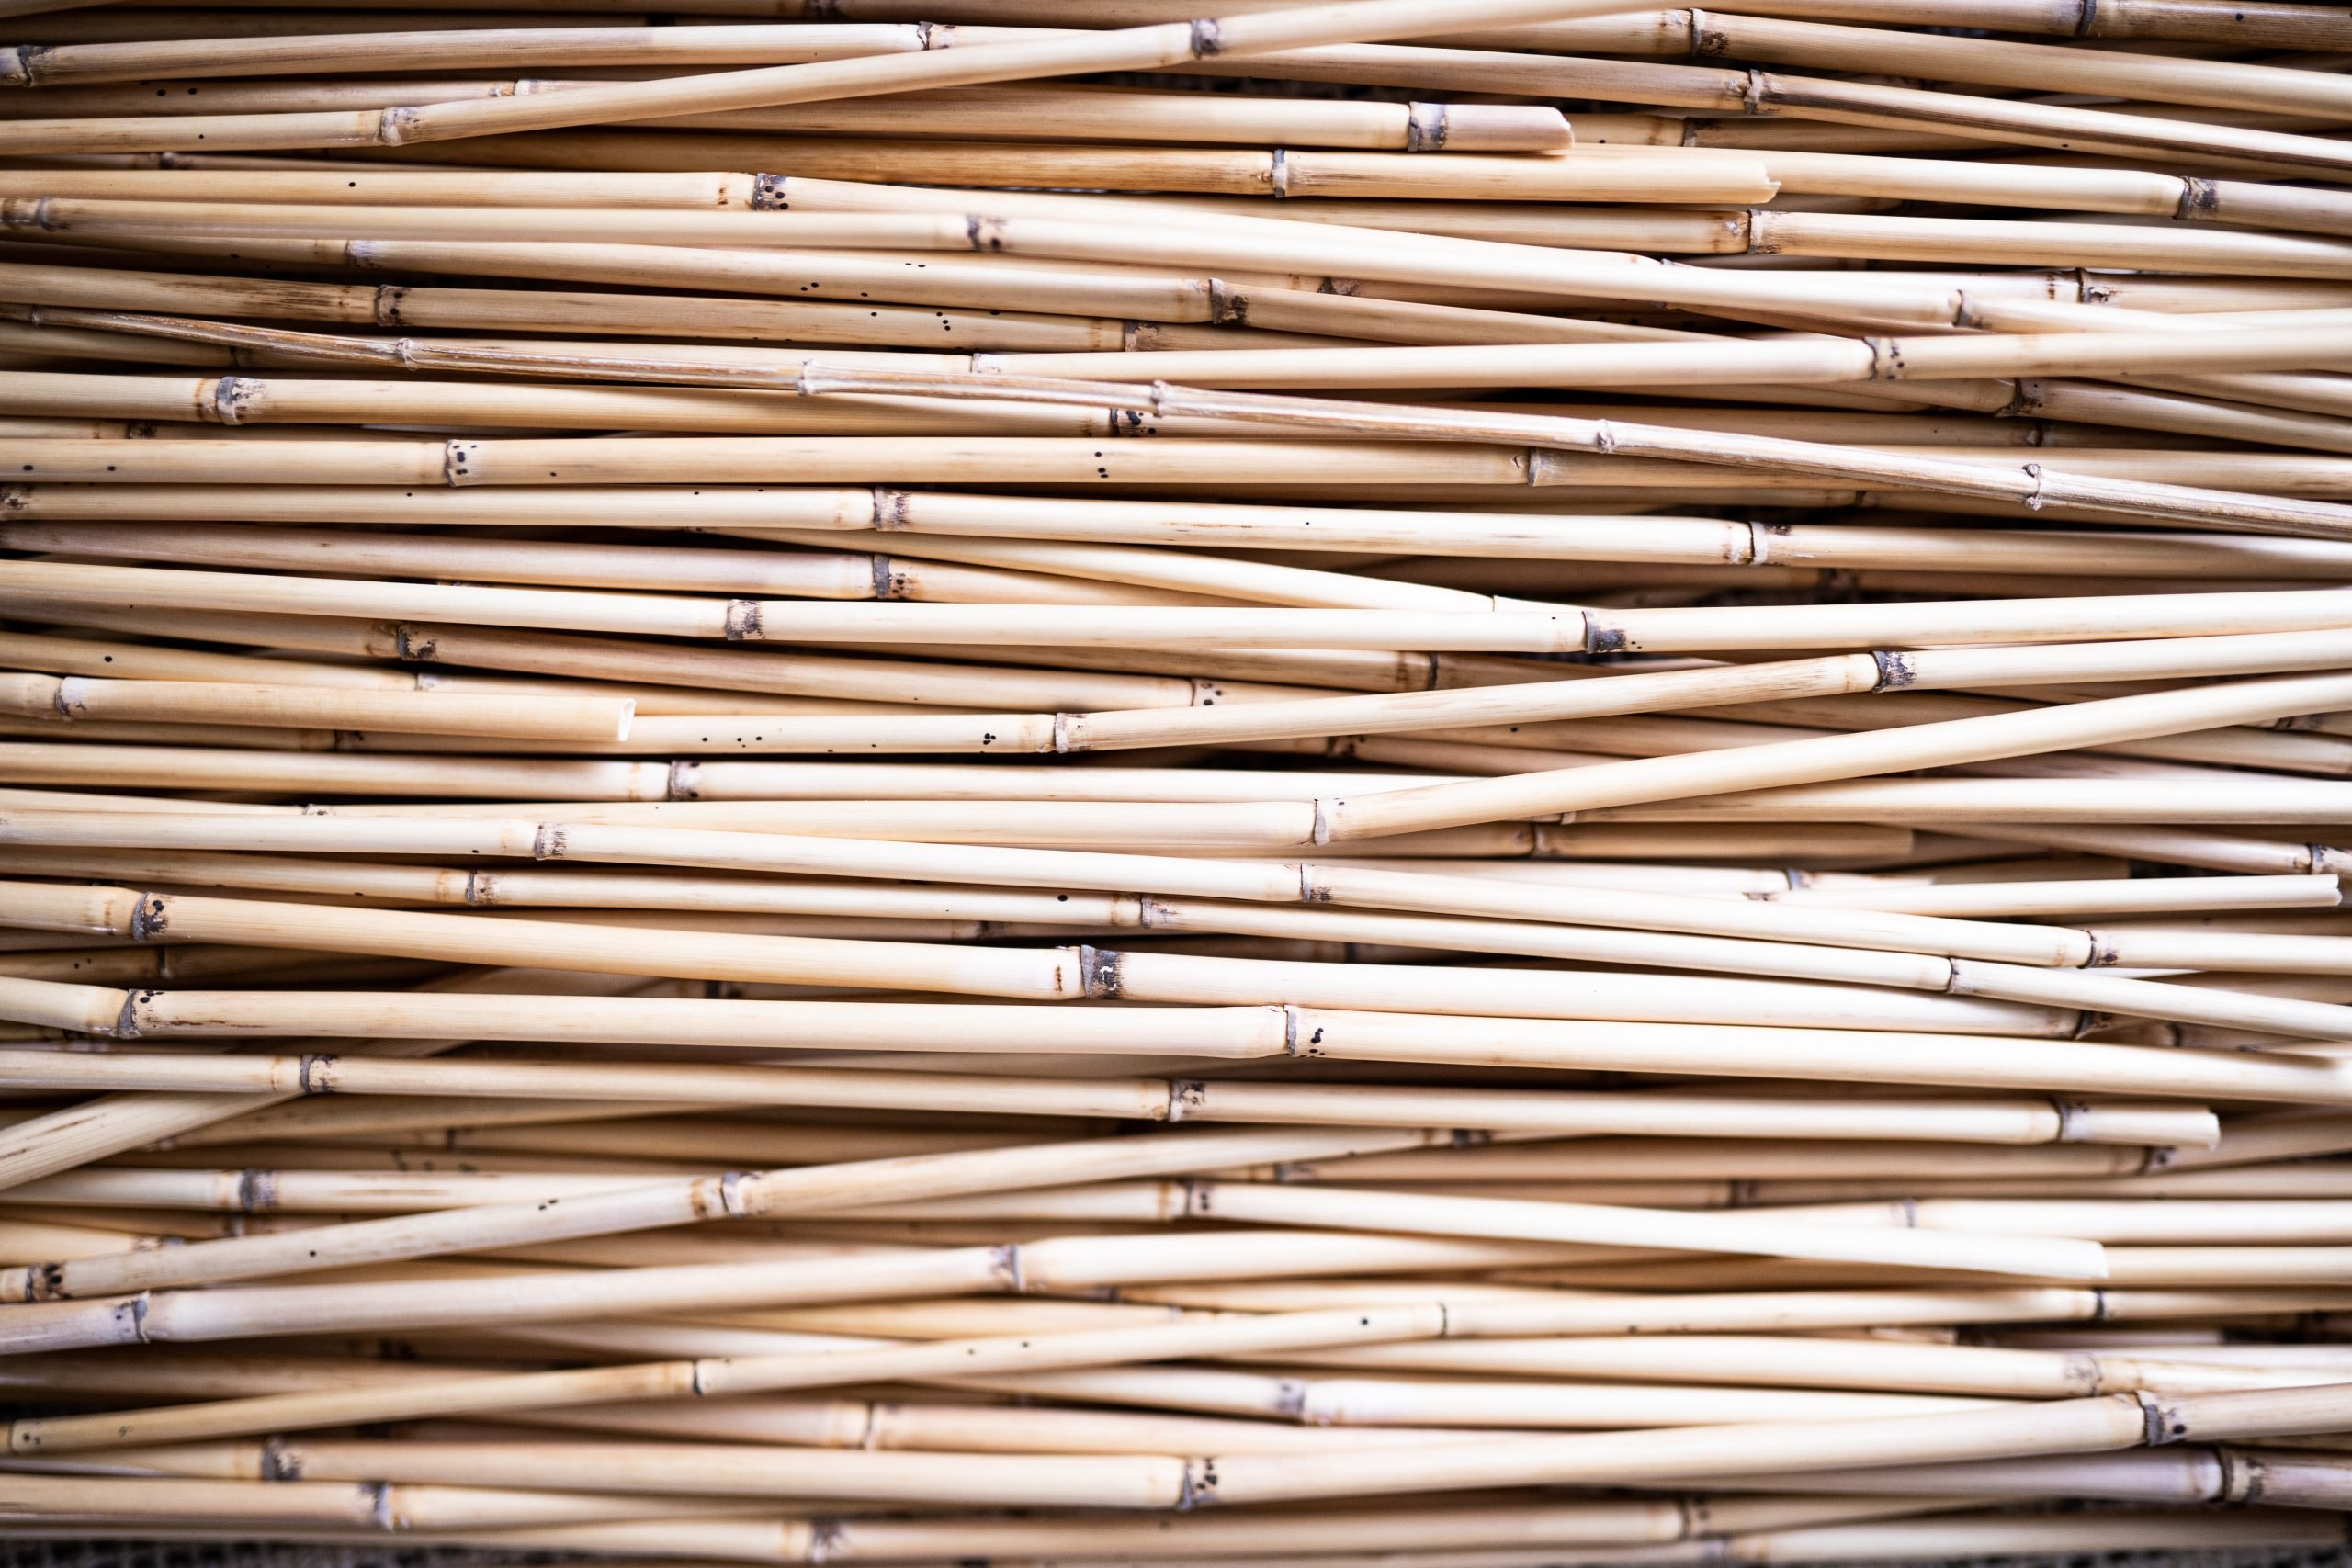 The bundle of the stick : Unity is a strength